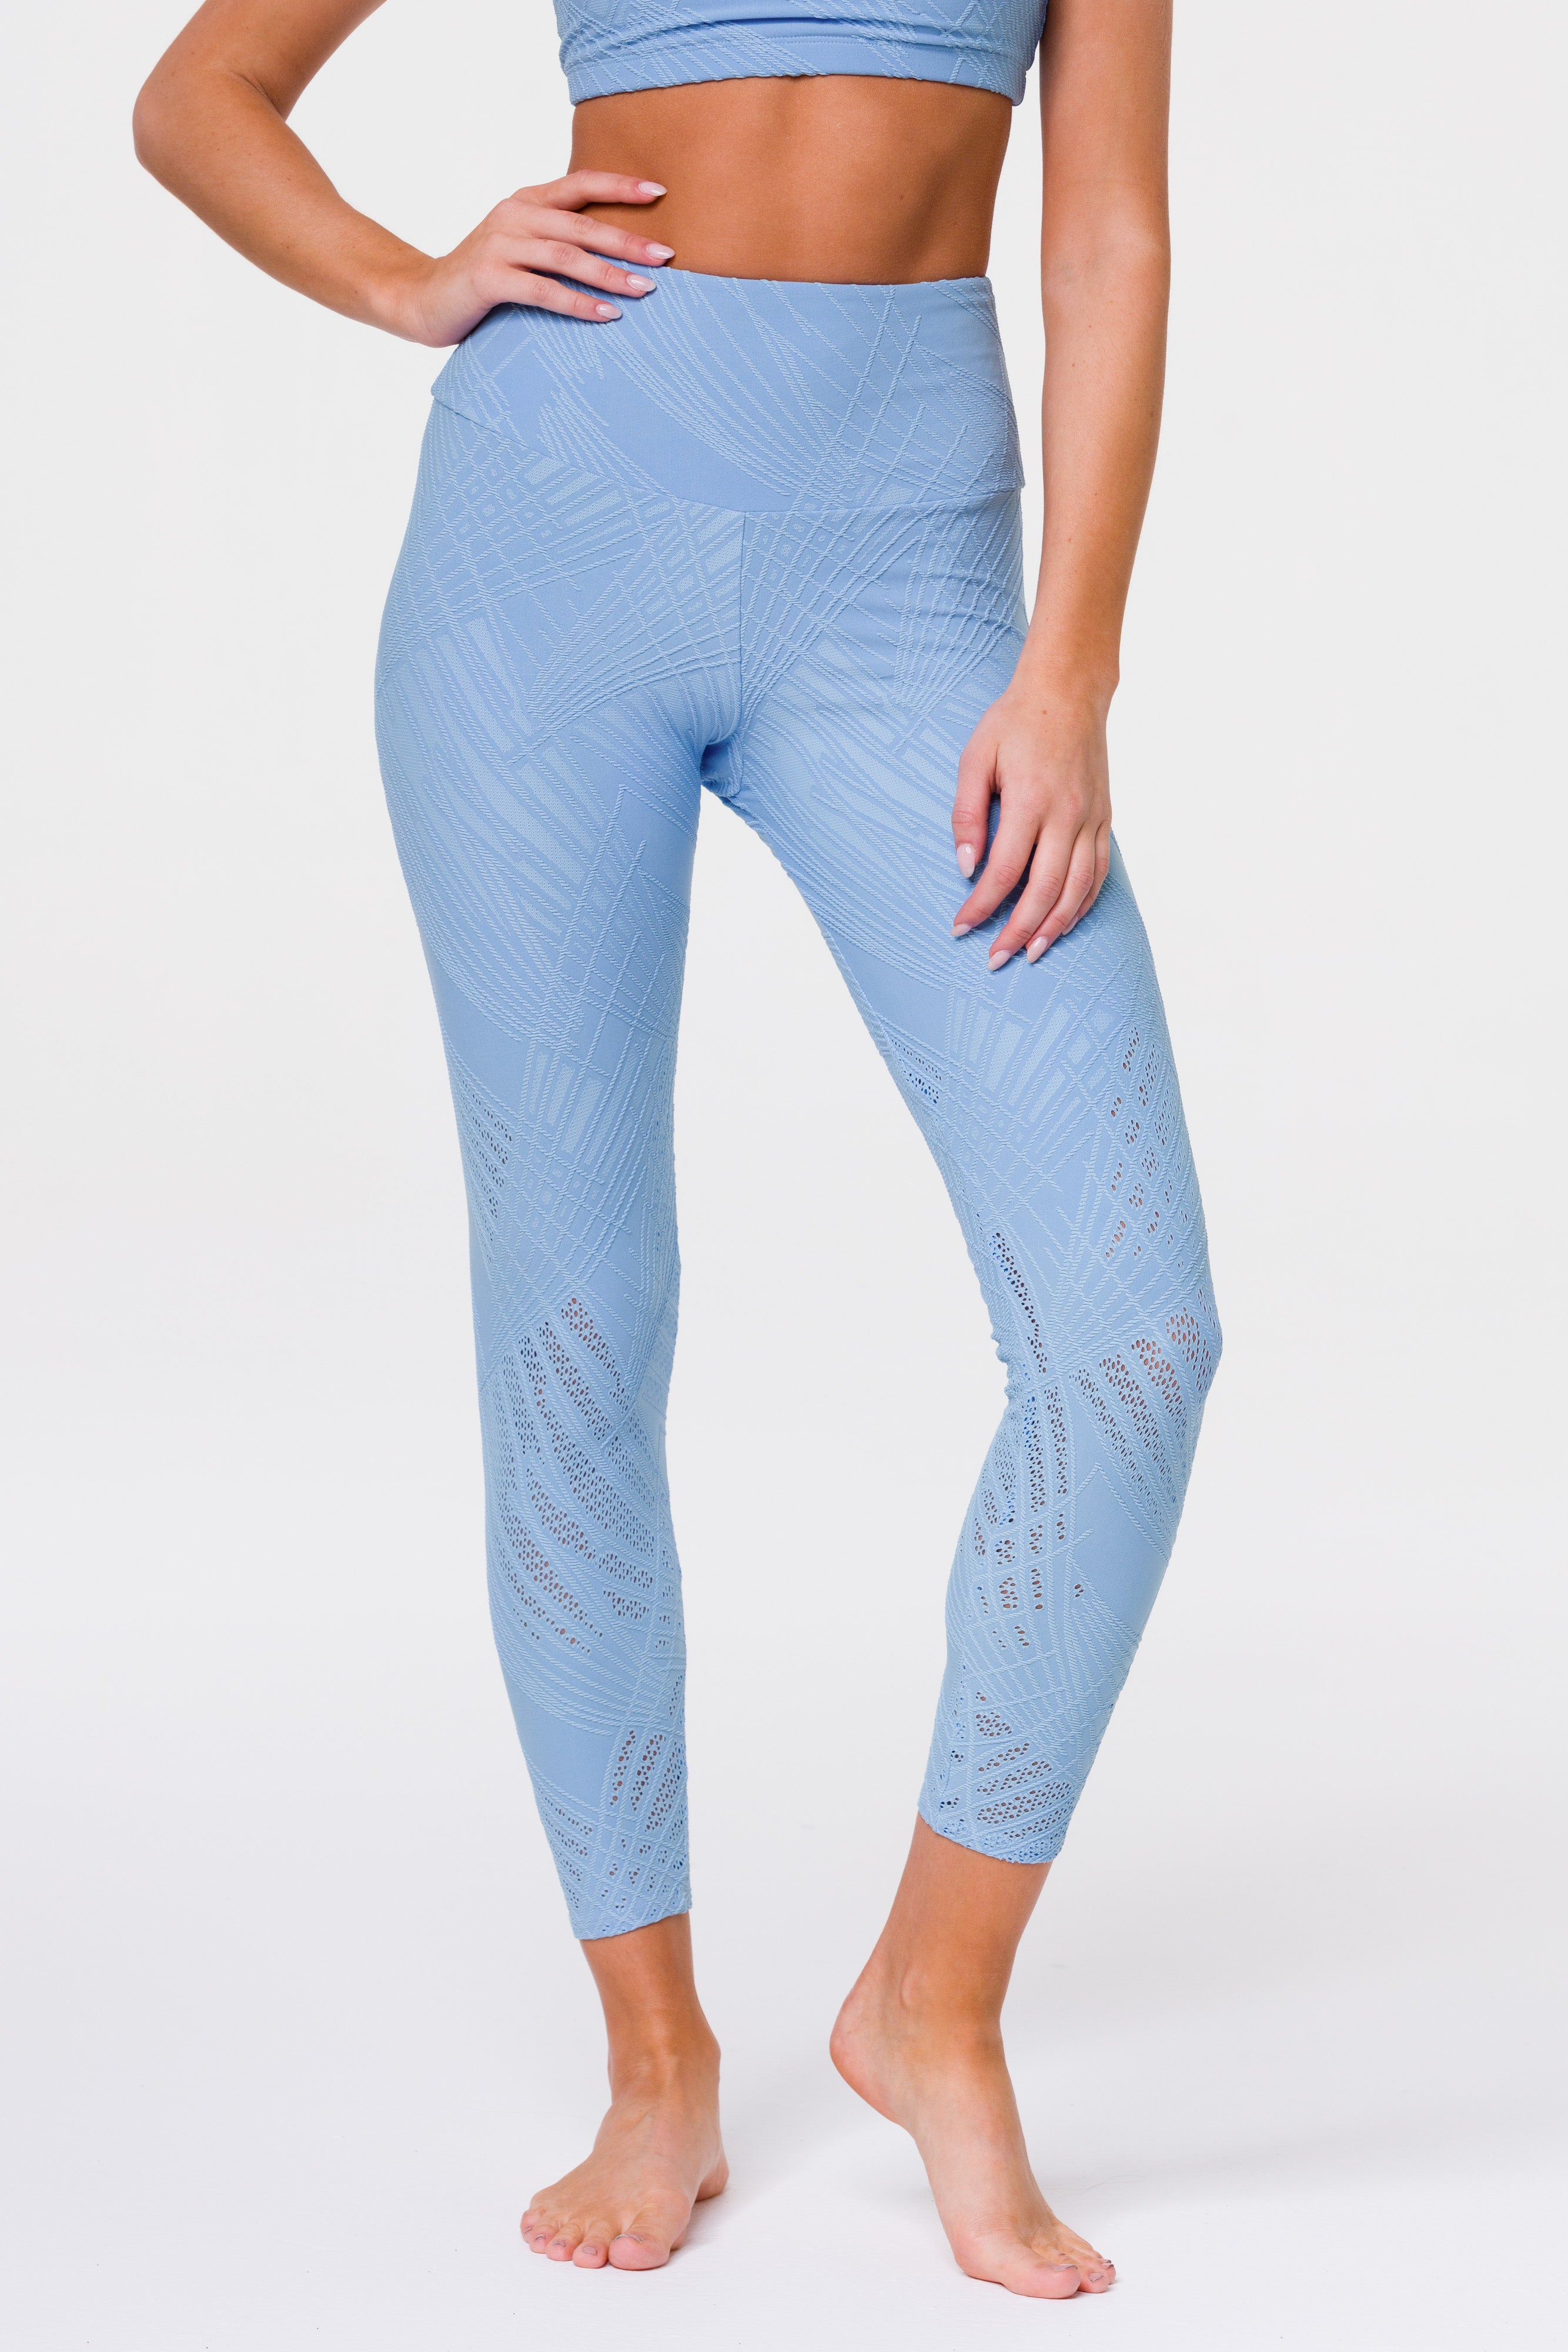 'Selenite' High Rise Midi Leggings - different colors